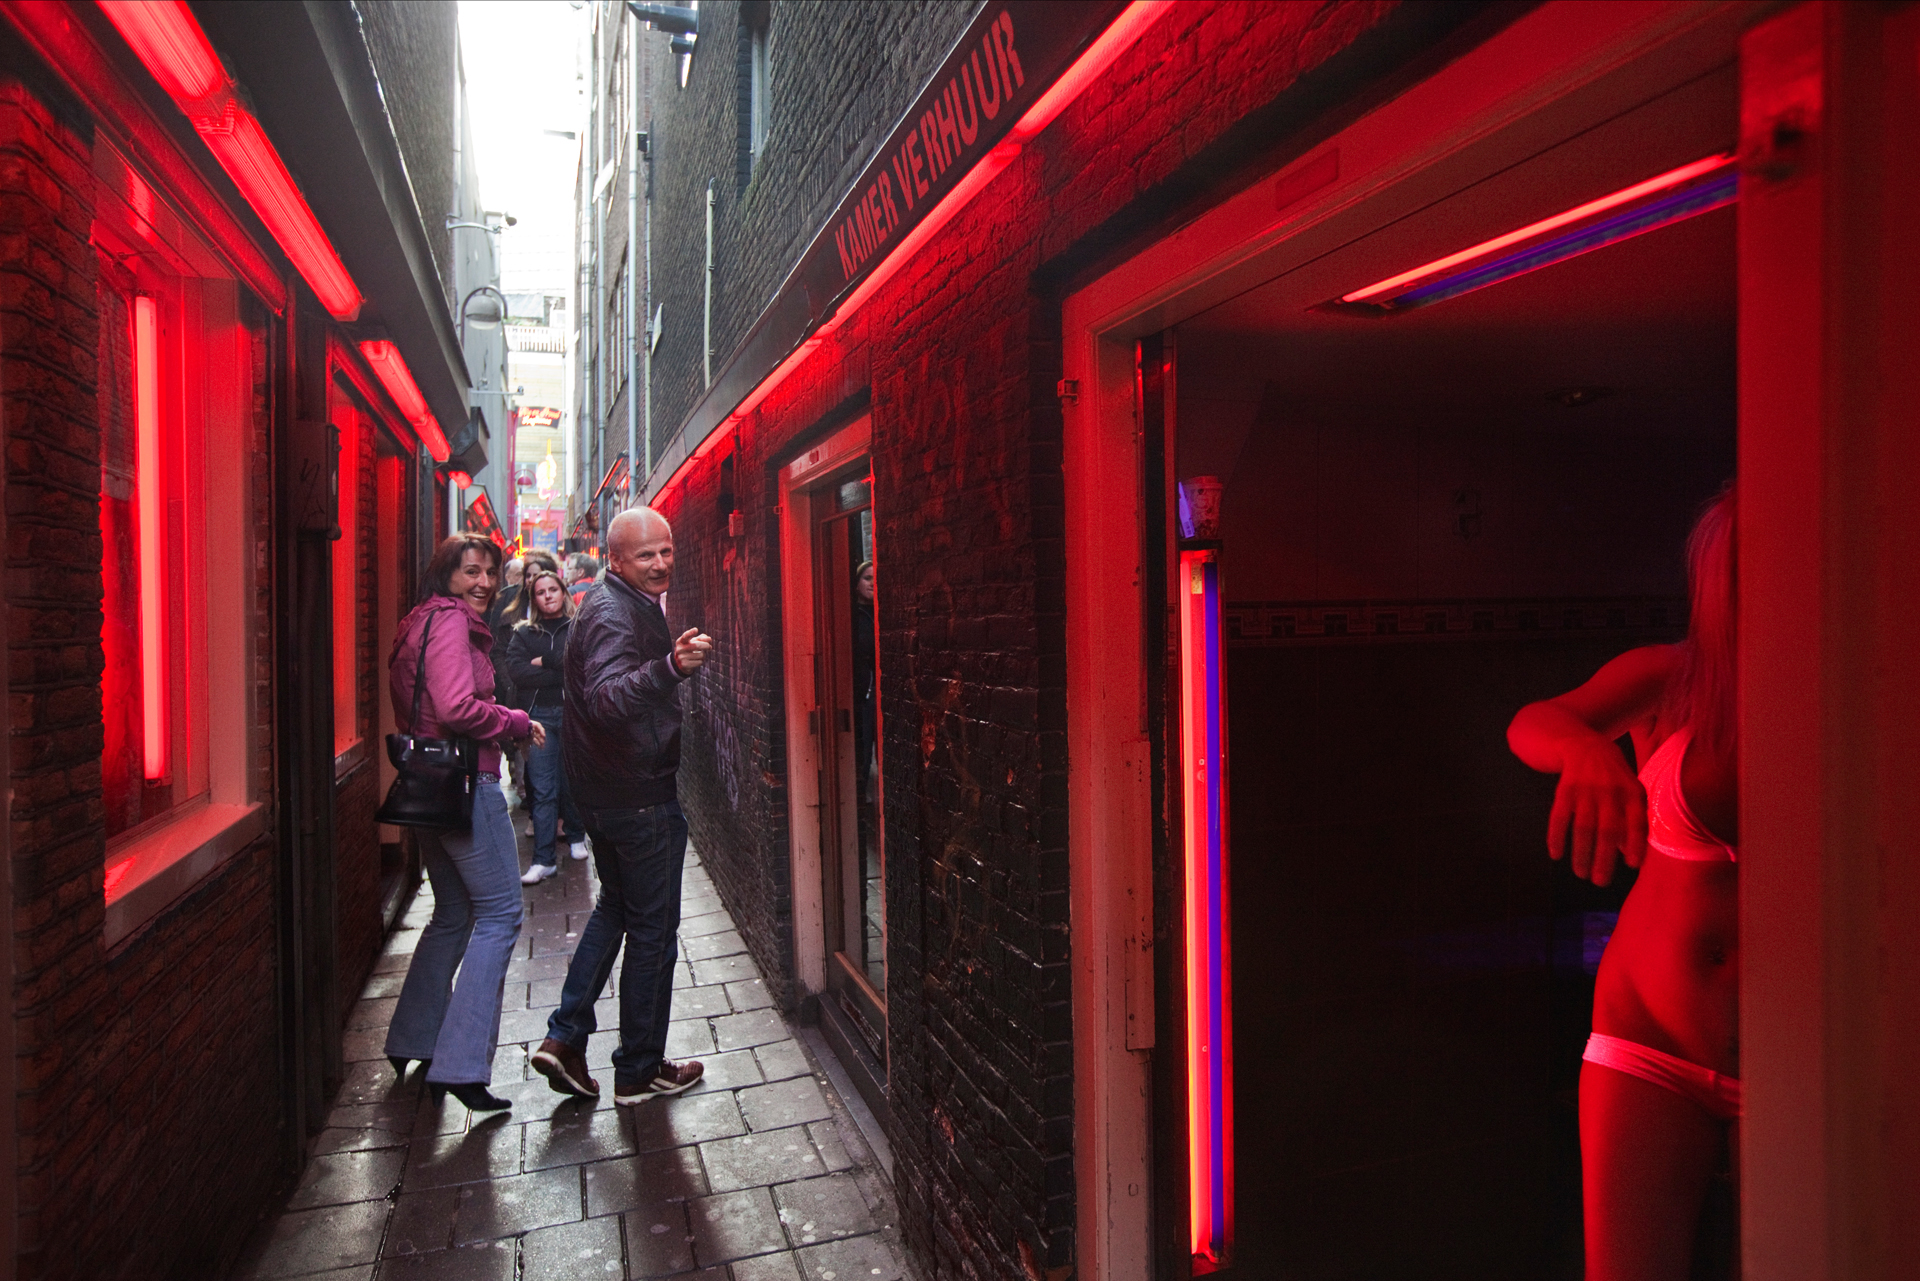 Located in the oldest section of Amsterdam, the De Wallen red-light district is best known for it's rows of neon-lit windows displaying prostitutes offering sexual services.